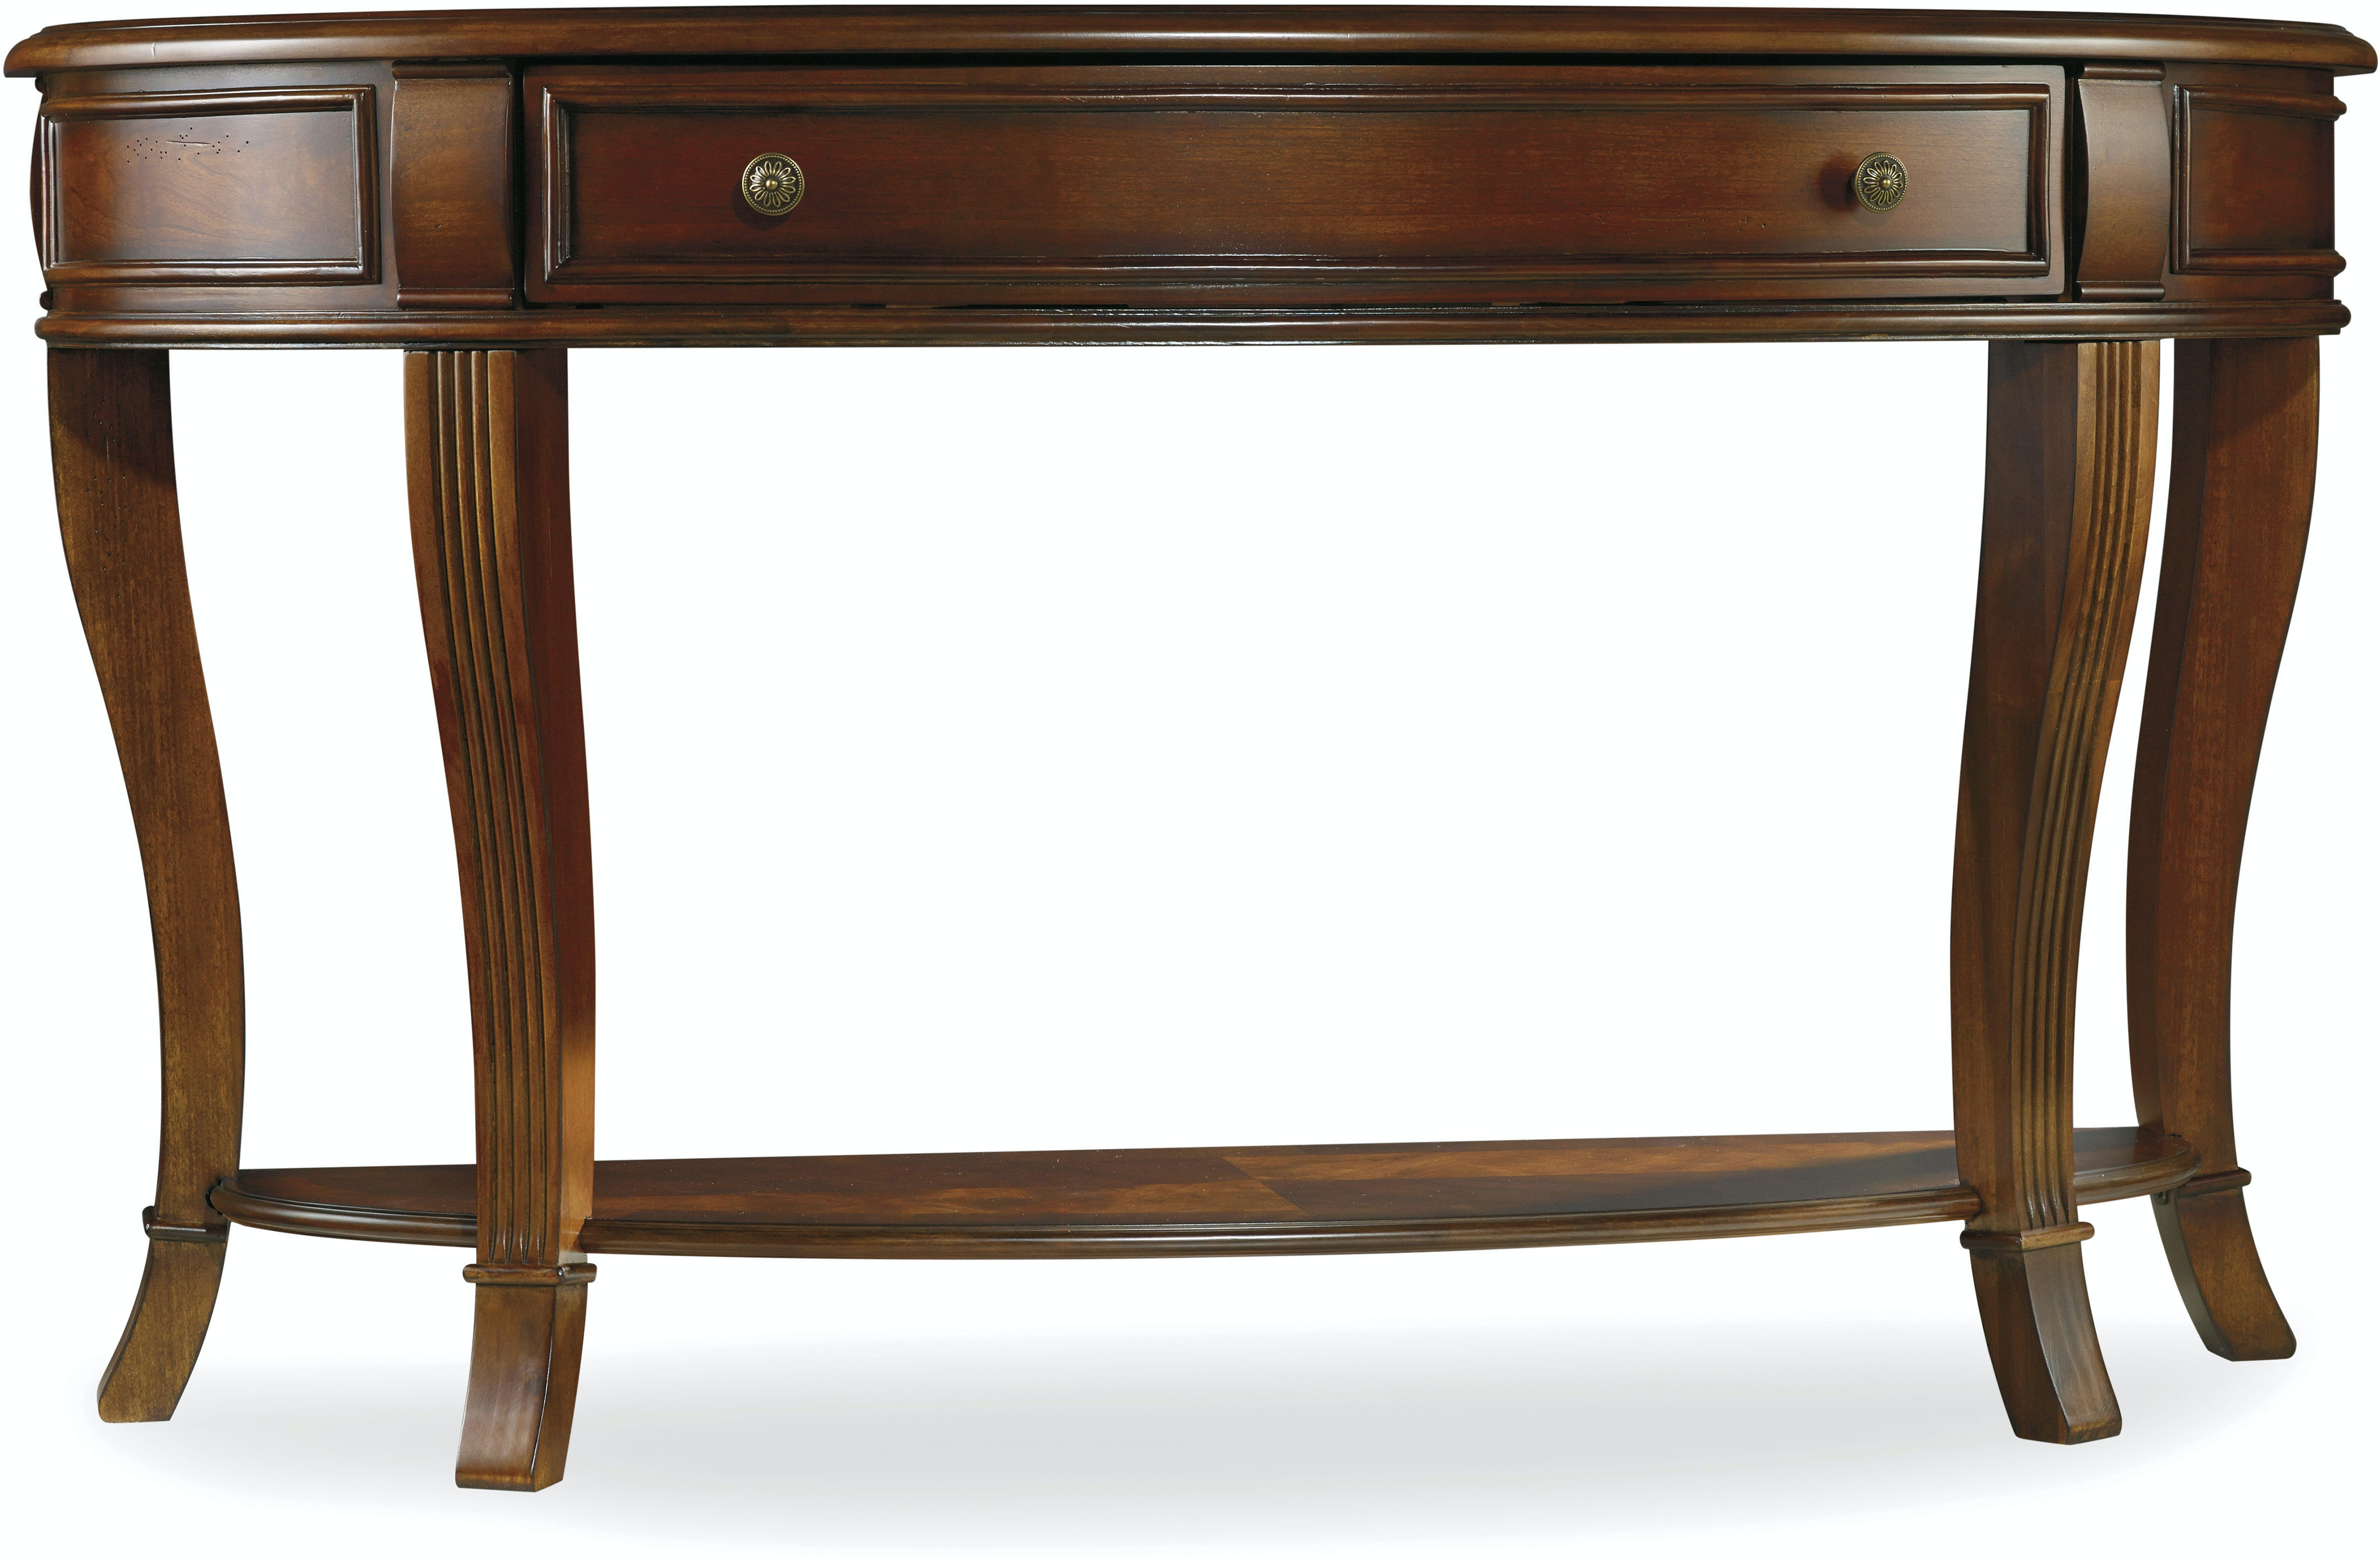 Hooker furniture living room brookhaven console table 281 80 151 hooker furniture brookhaven console table 281 80 151 geotapseo Gallery